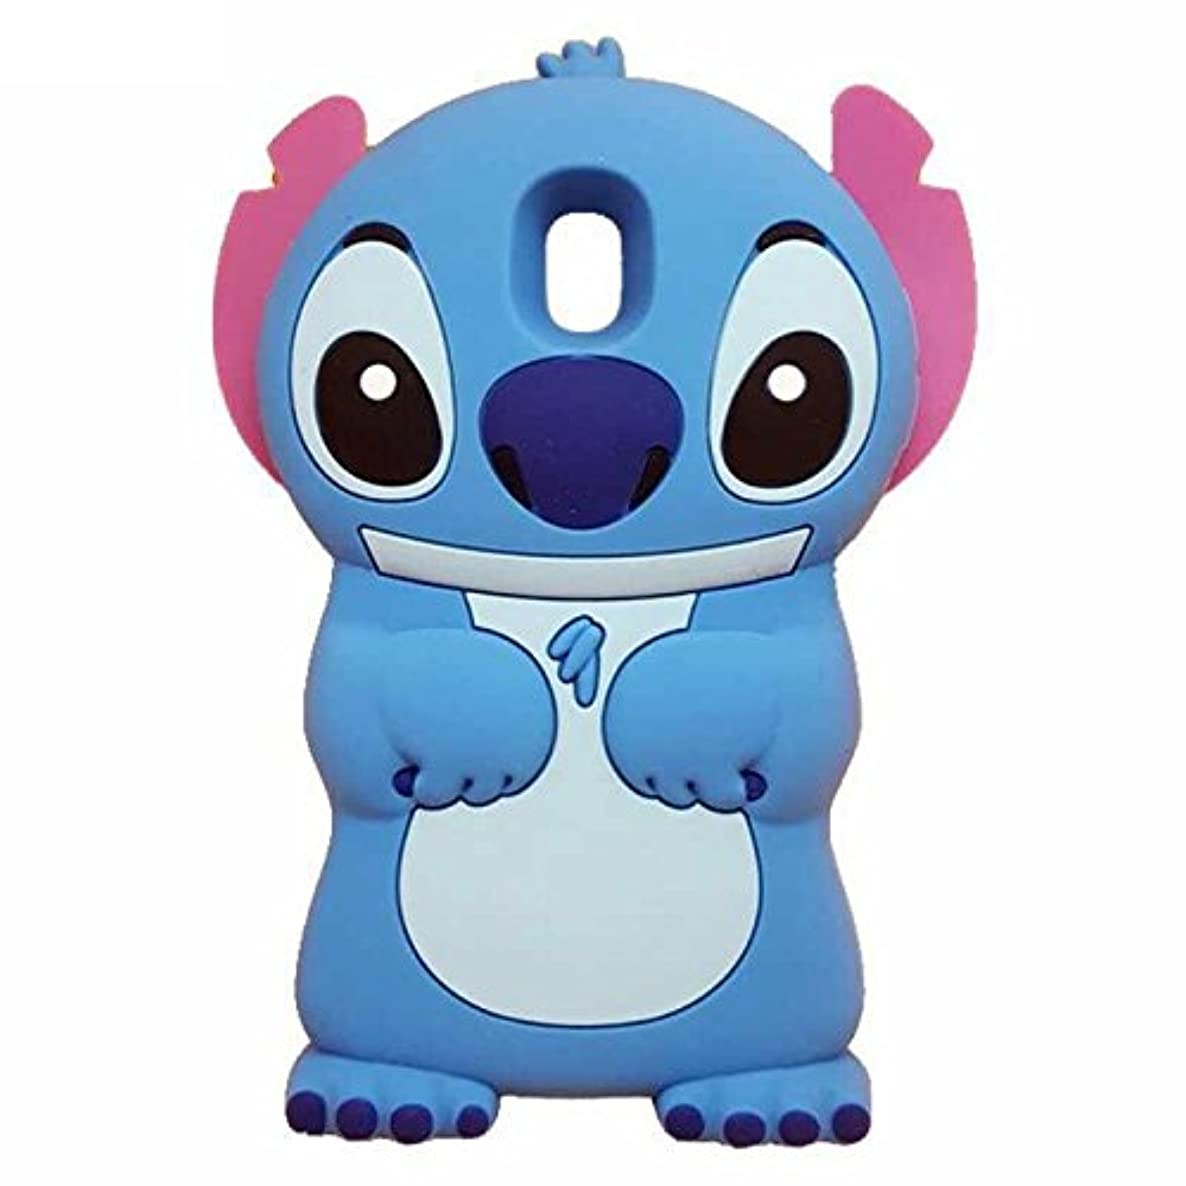 Stingna 3D Cute Blue Animal Soft Silicone Case Cover For Samsung Galaxy J730 (2017)/J7 Pro (2017) (J730)